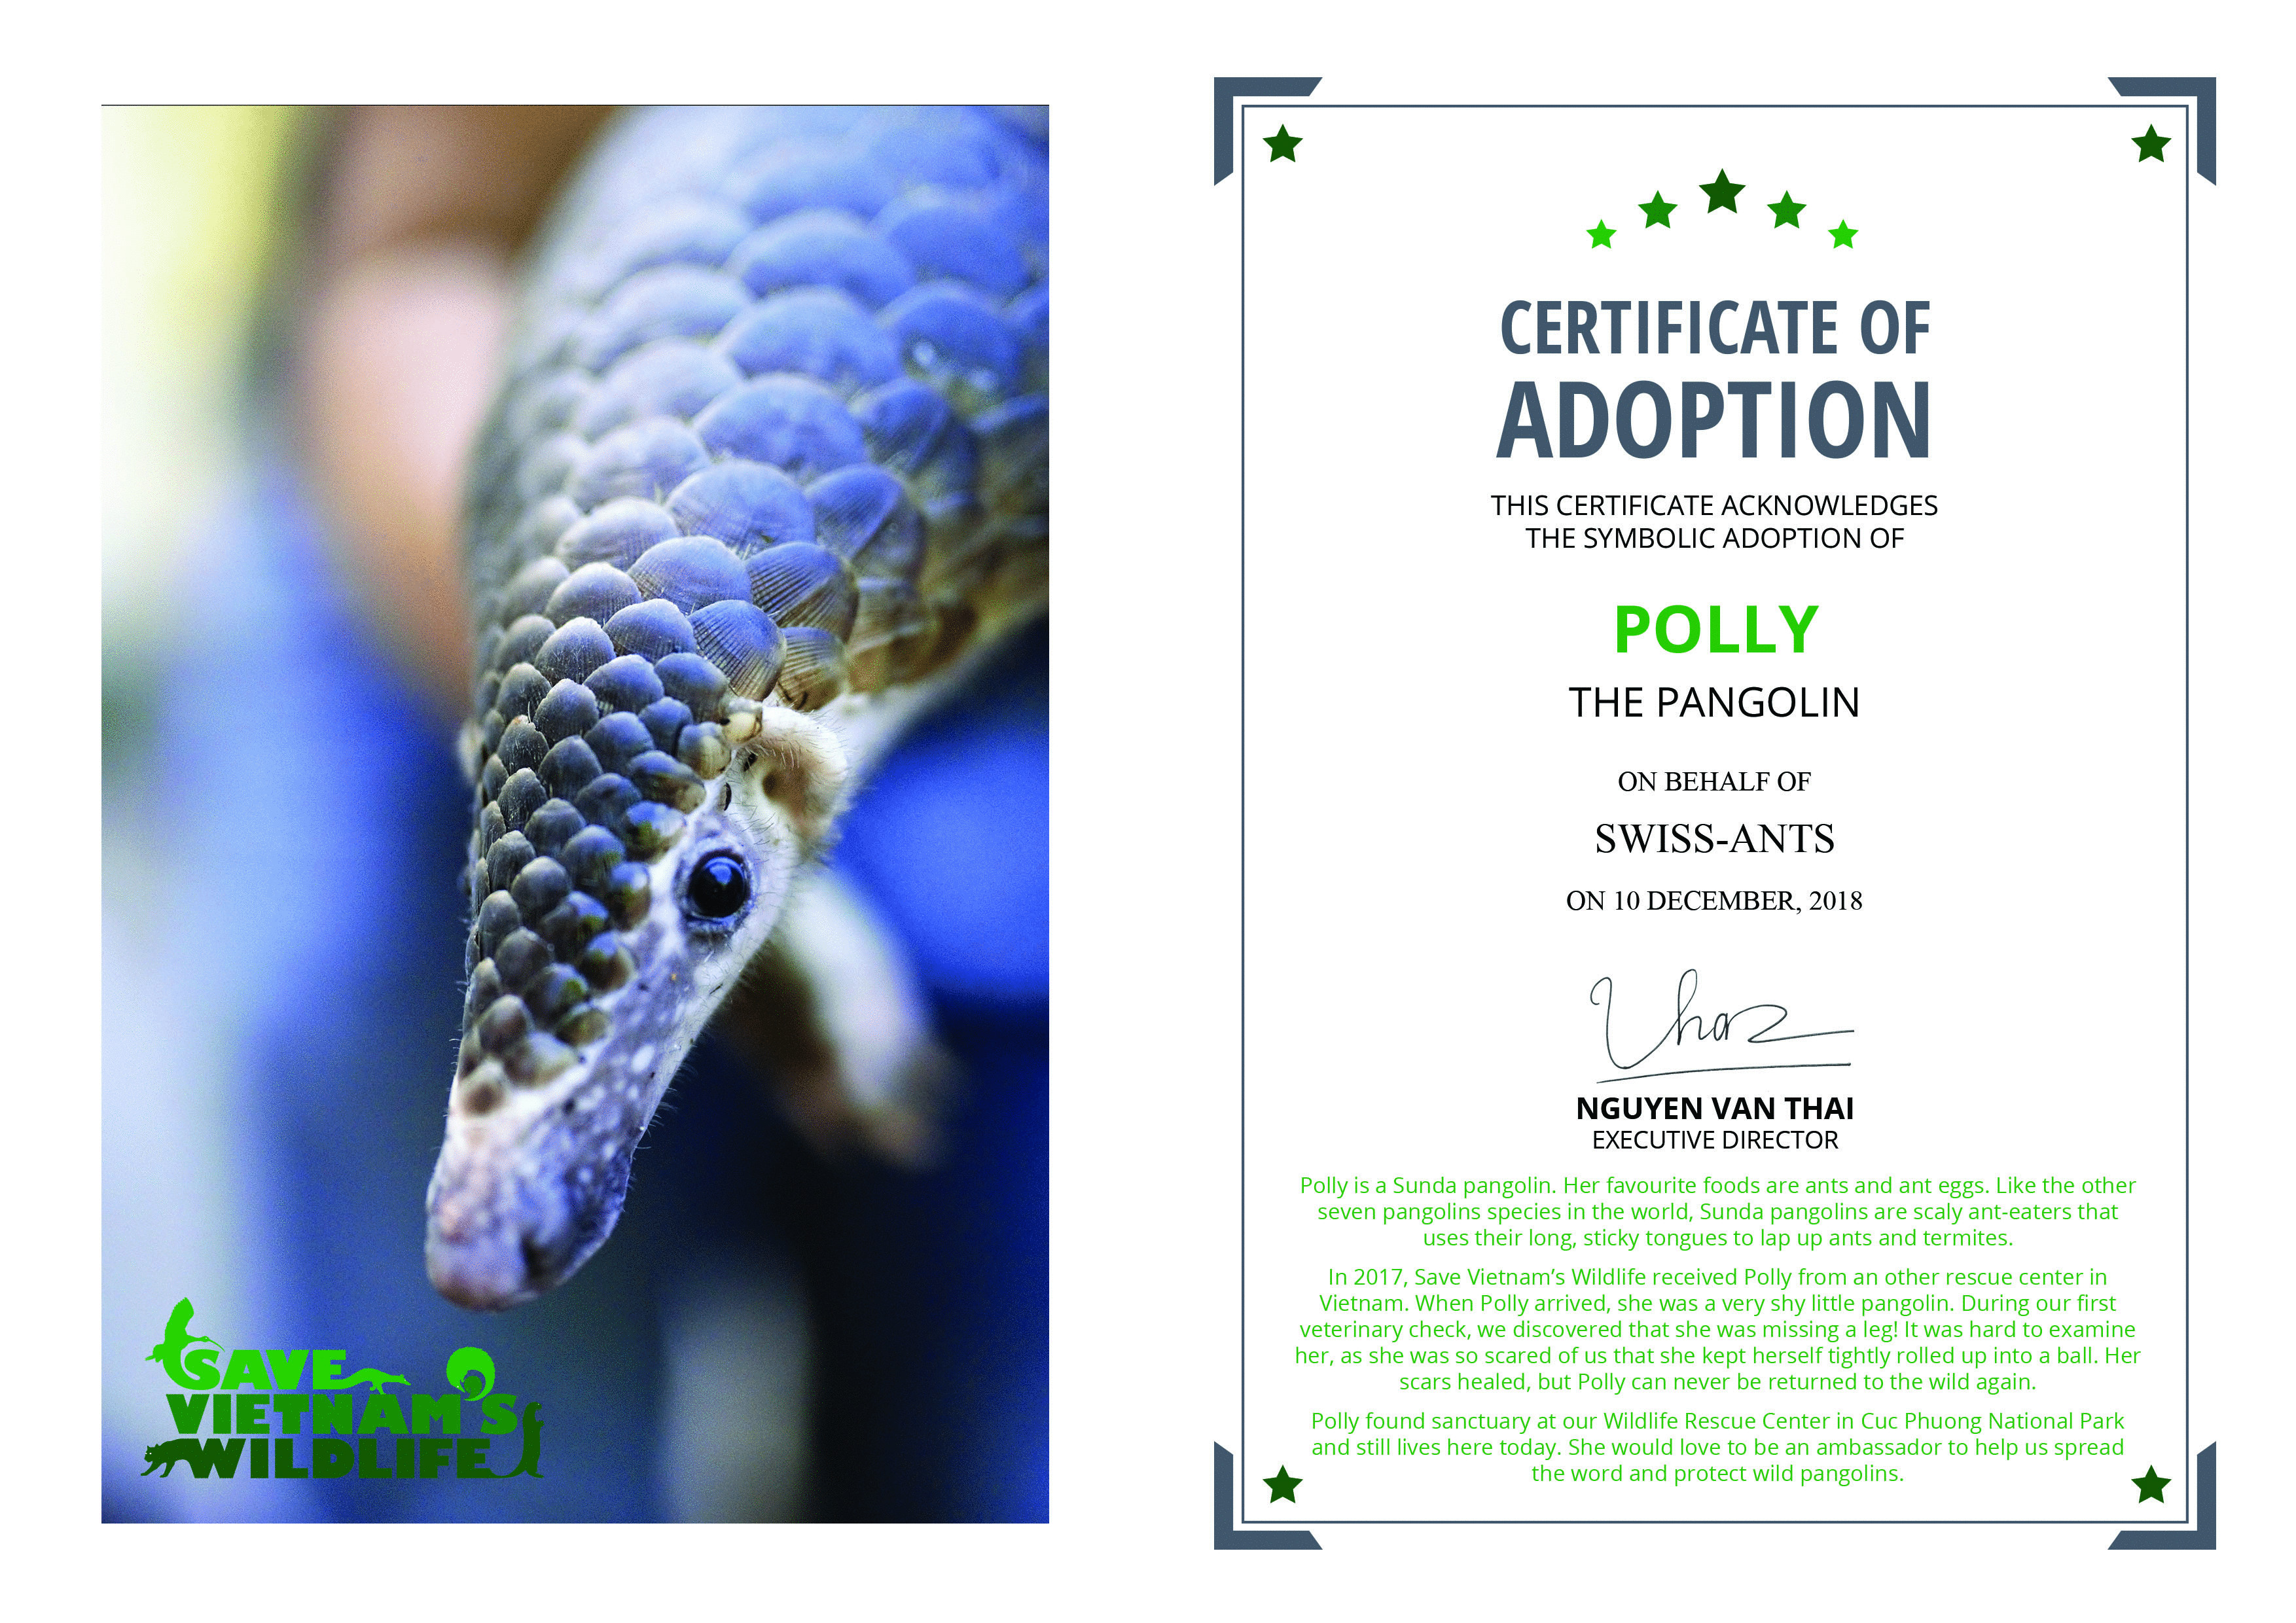 Adoption_Certificate_Polly_Swiss-Ants